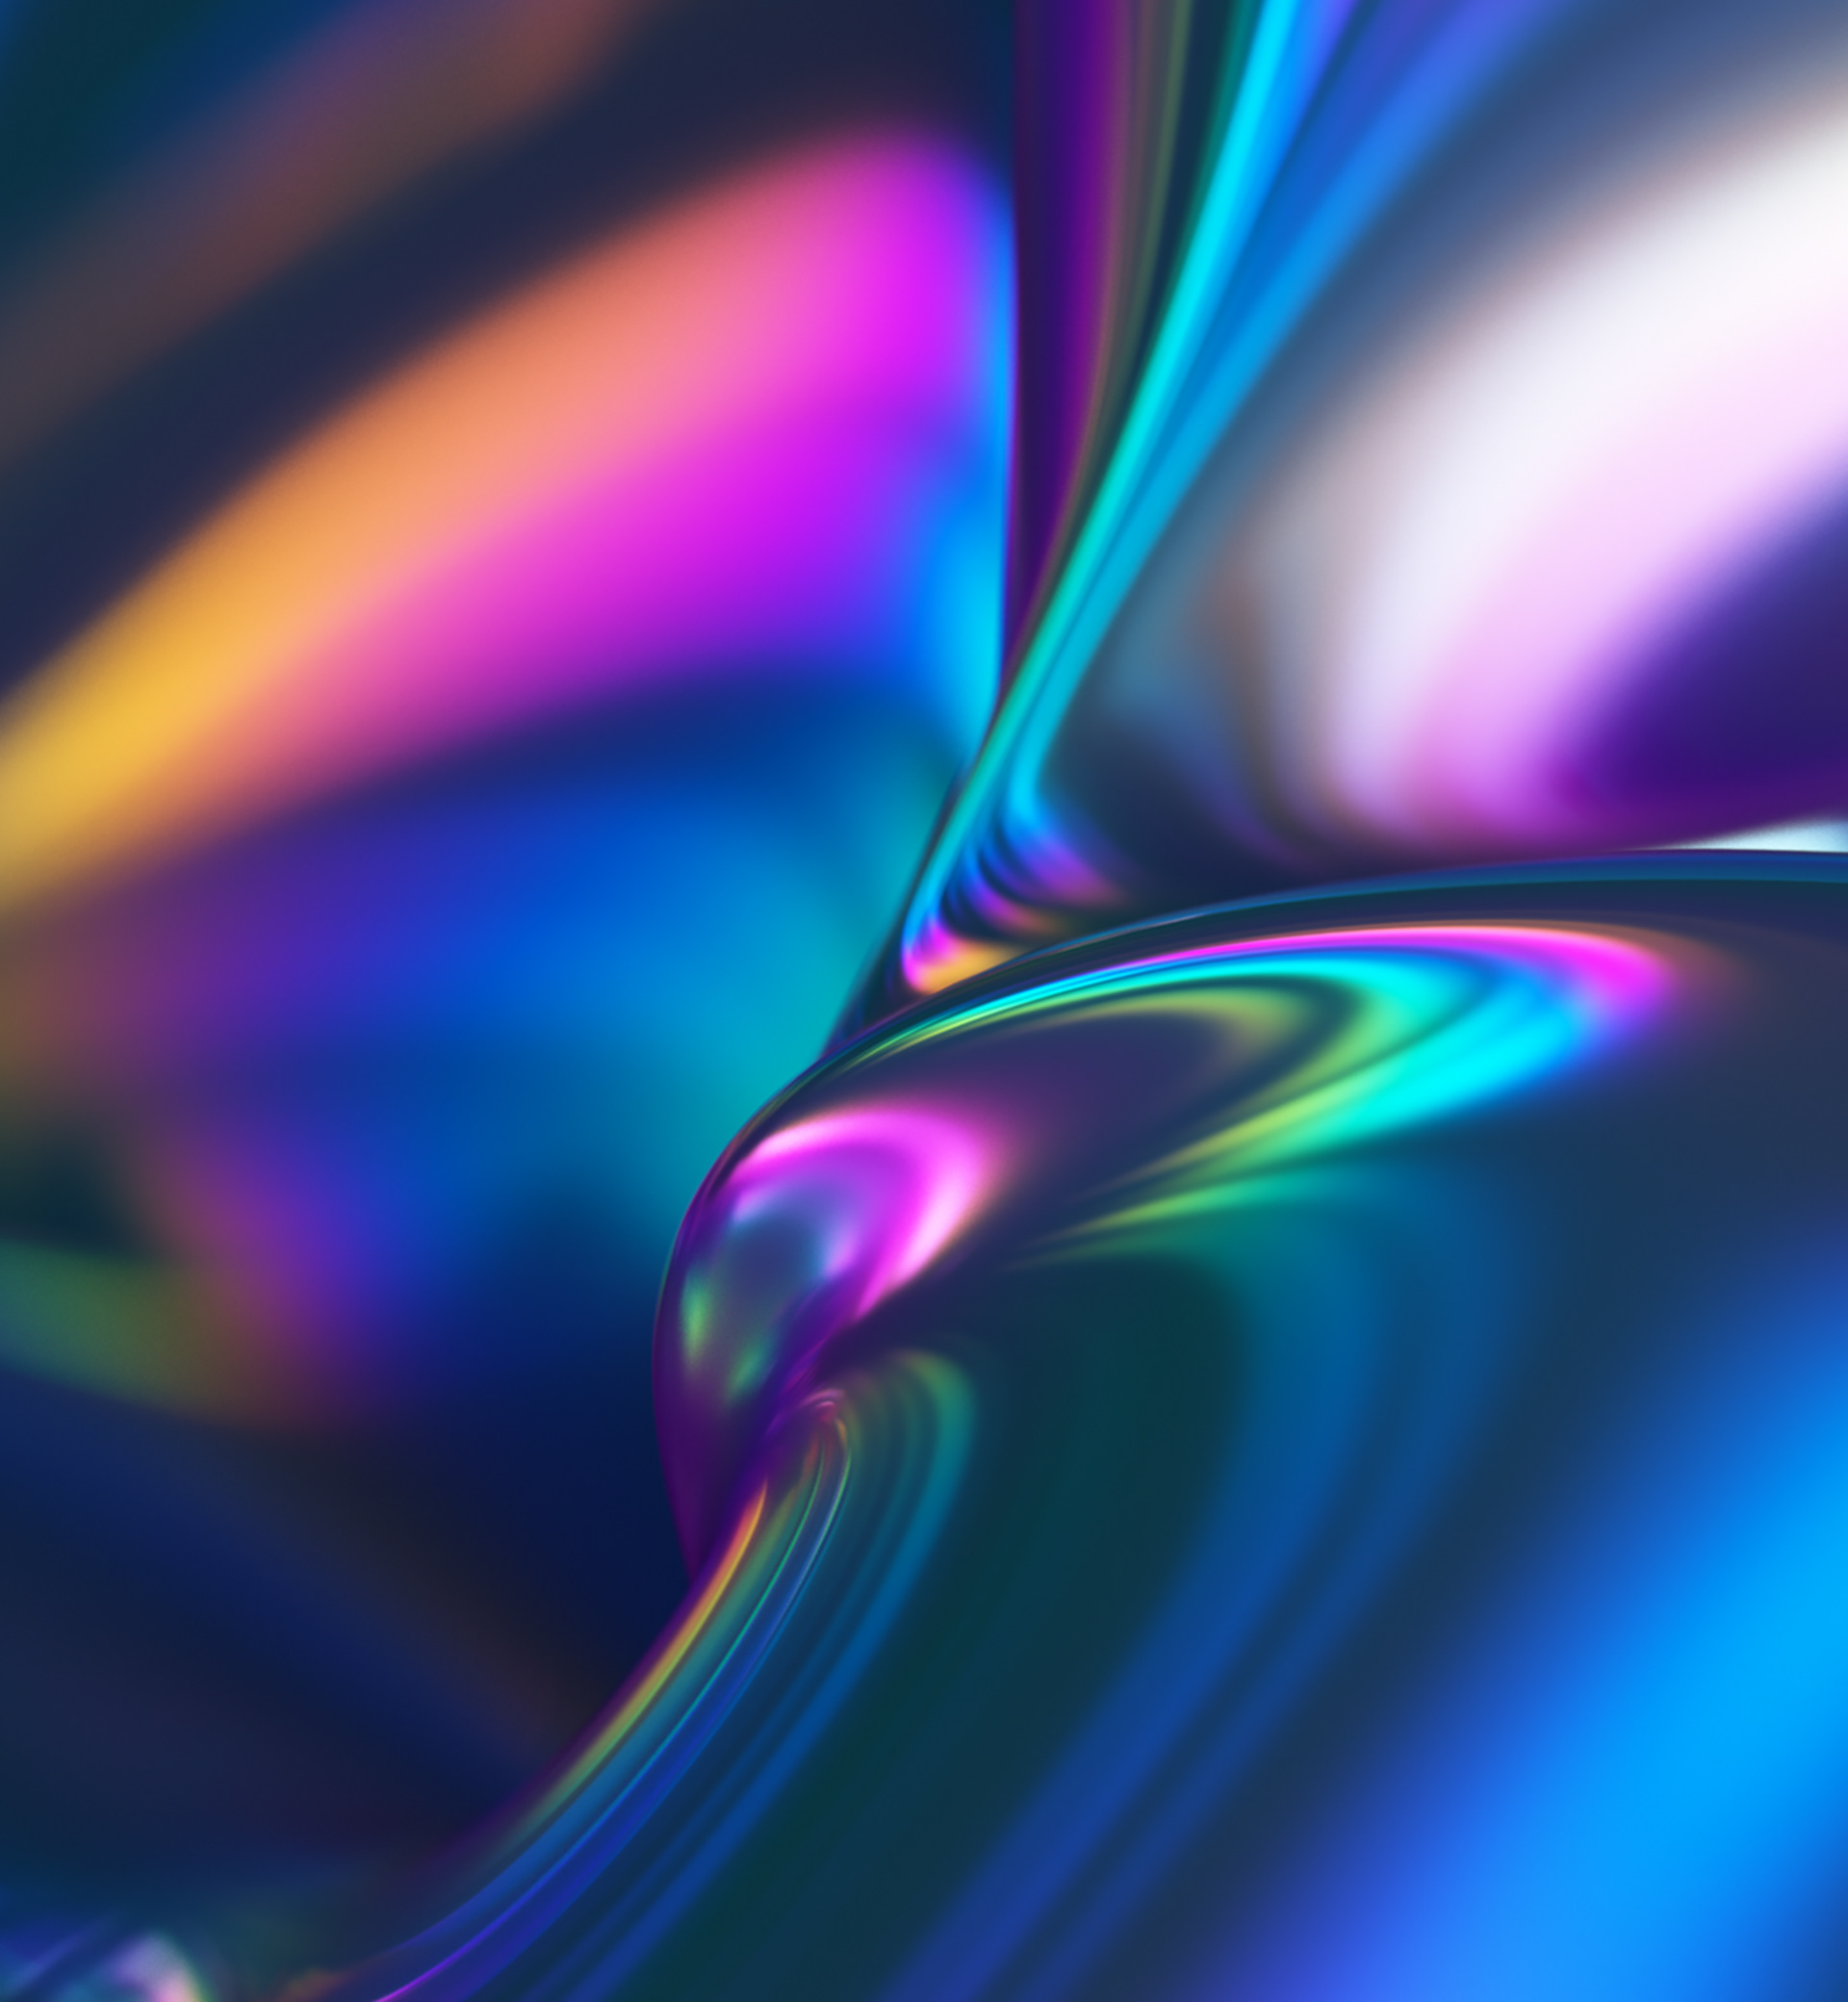 Stunning Light Prism Series by Danny Ivan